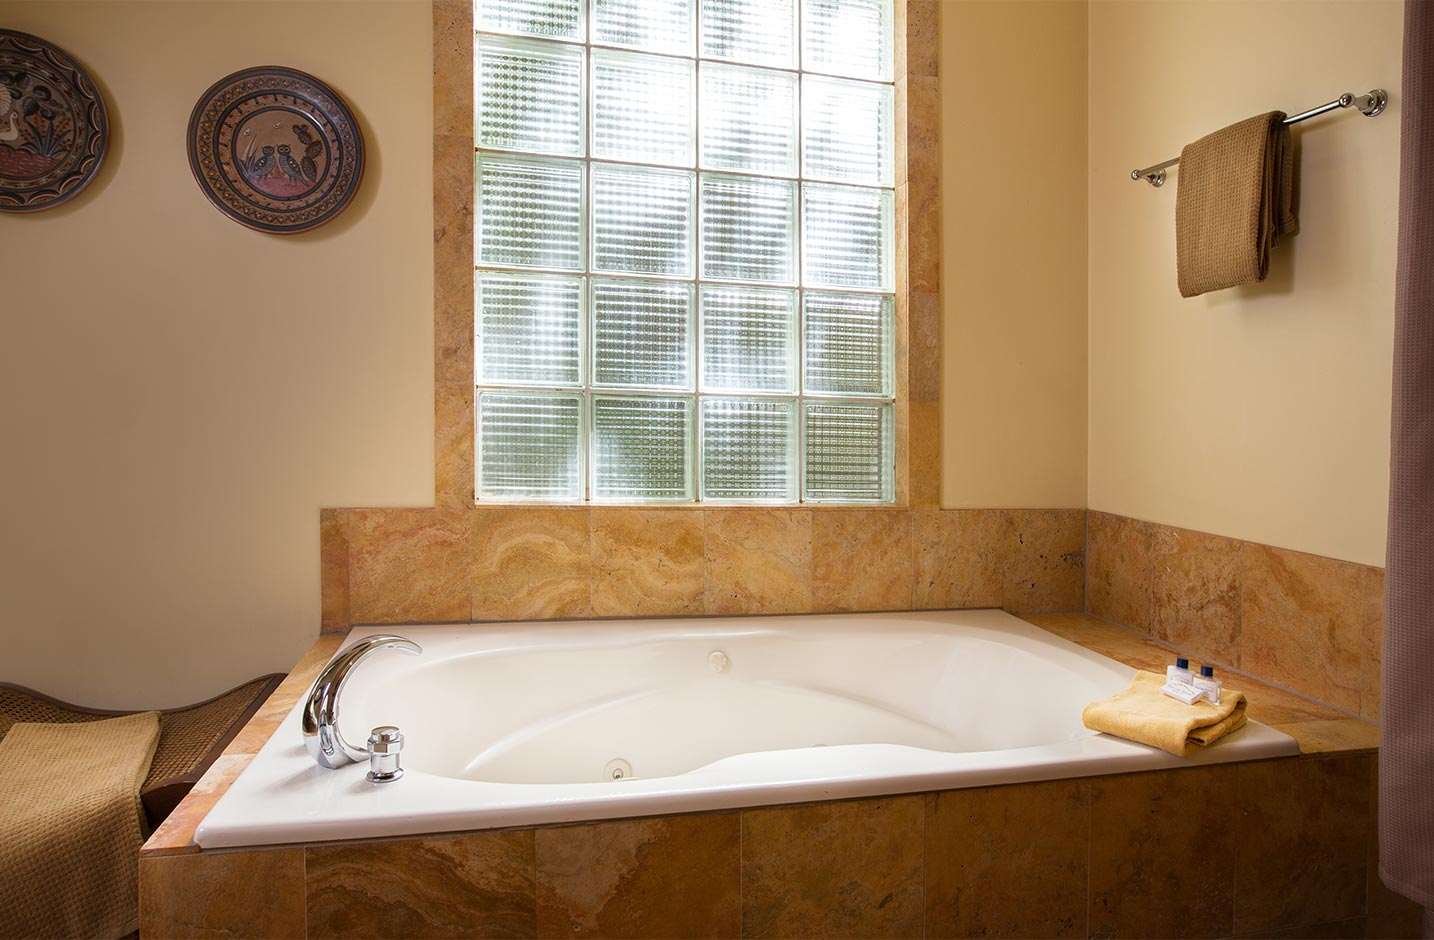 A Whirlpool tub with a glass block wall in a spacious bathroom